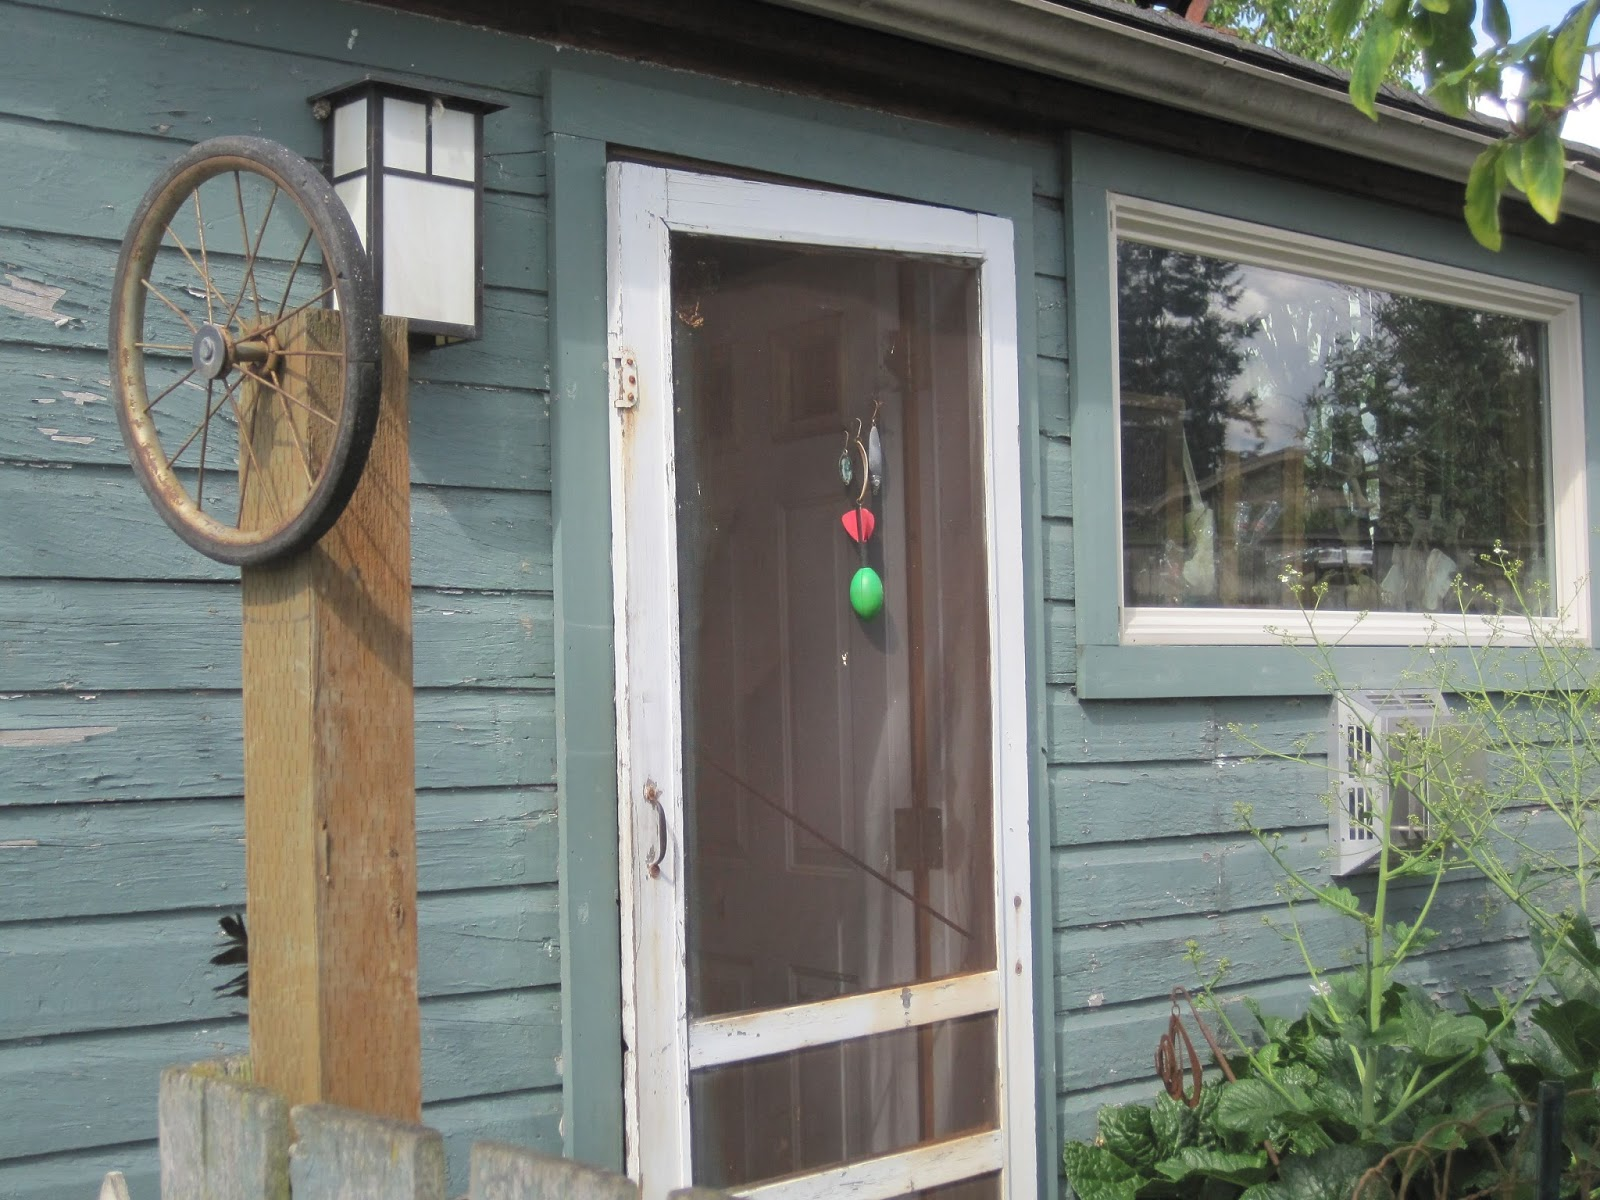 Whimsical Windows And Delirious Doors